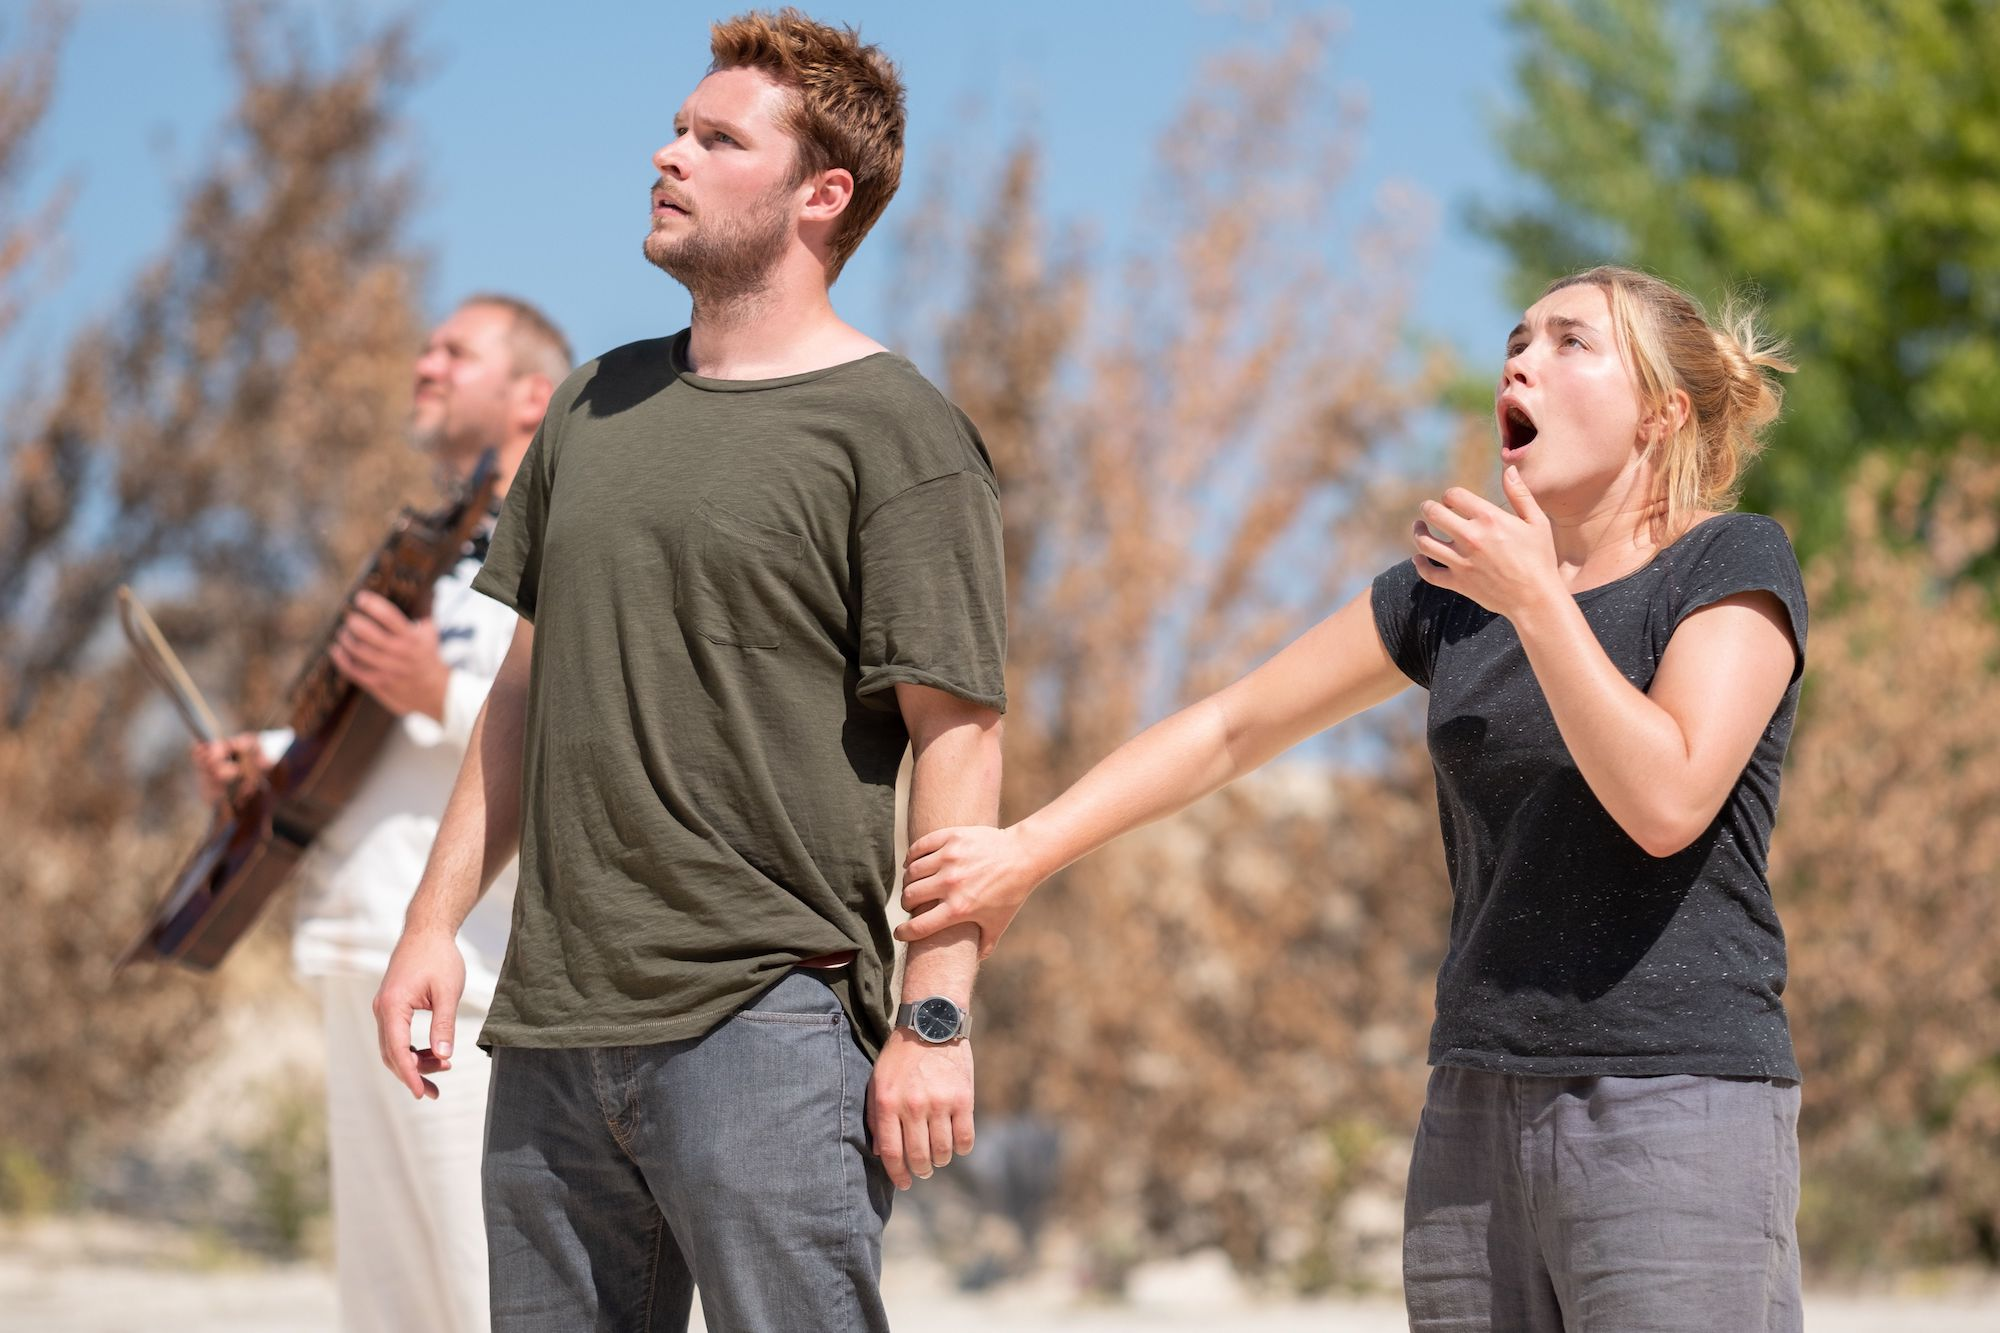 Ari Aster's Midsommar film Florence Pugh and jack Reynor shock